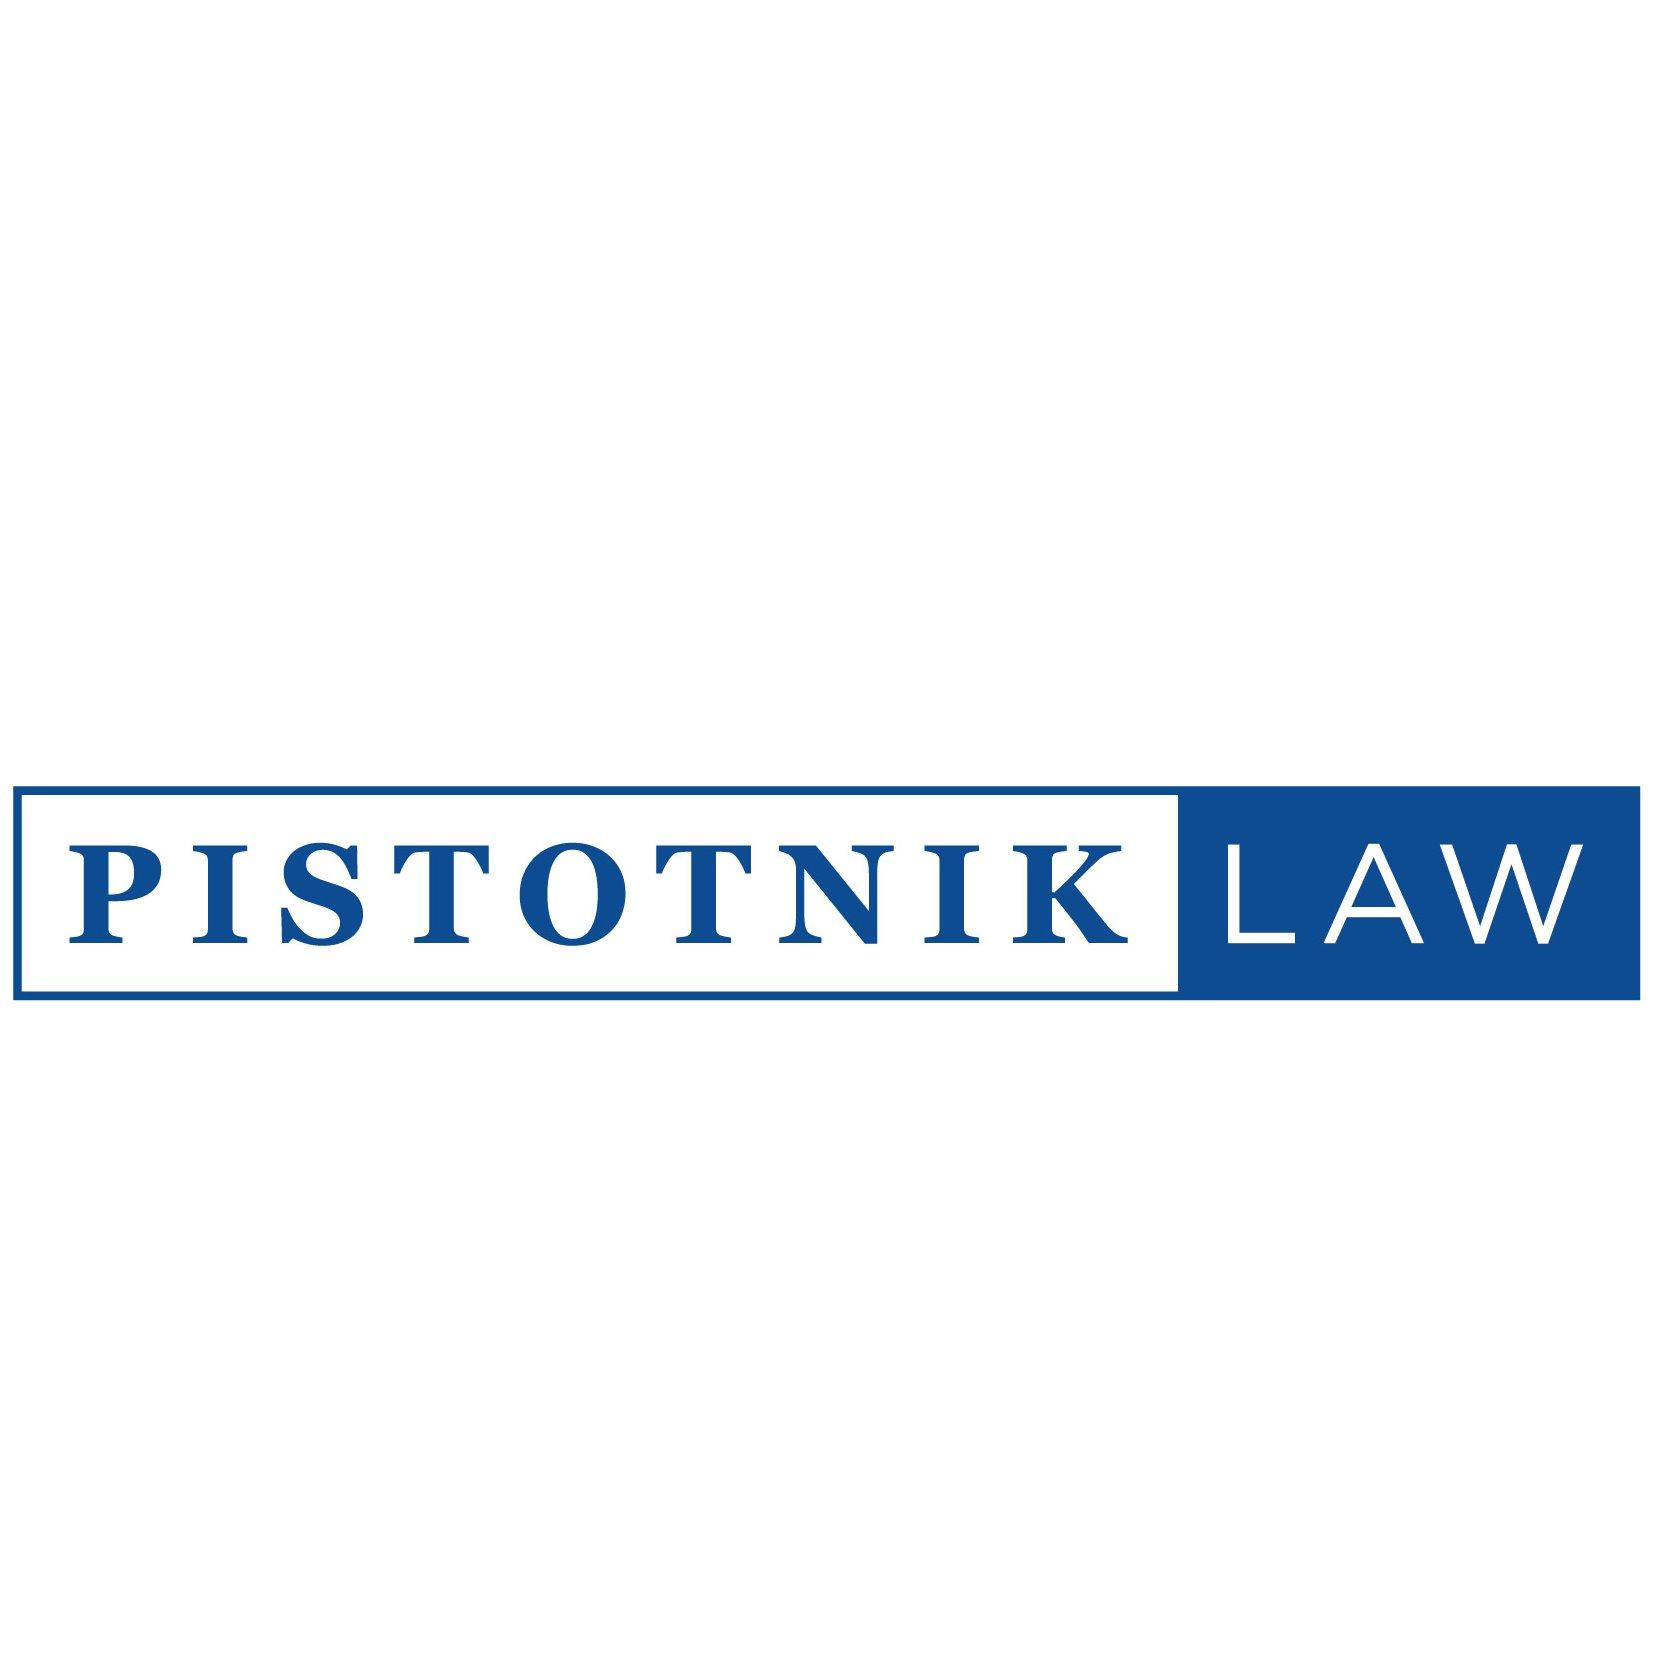 Motorcycle Stores Near Me >> Pistotnik Law Coupons near me in Wichita | 8coupons